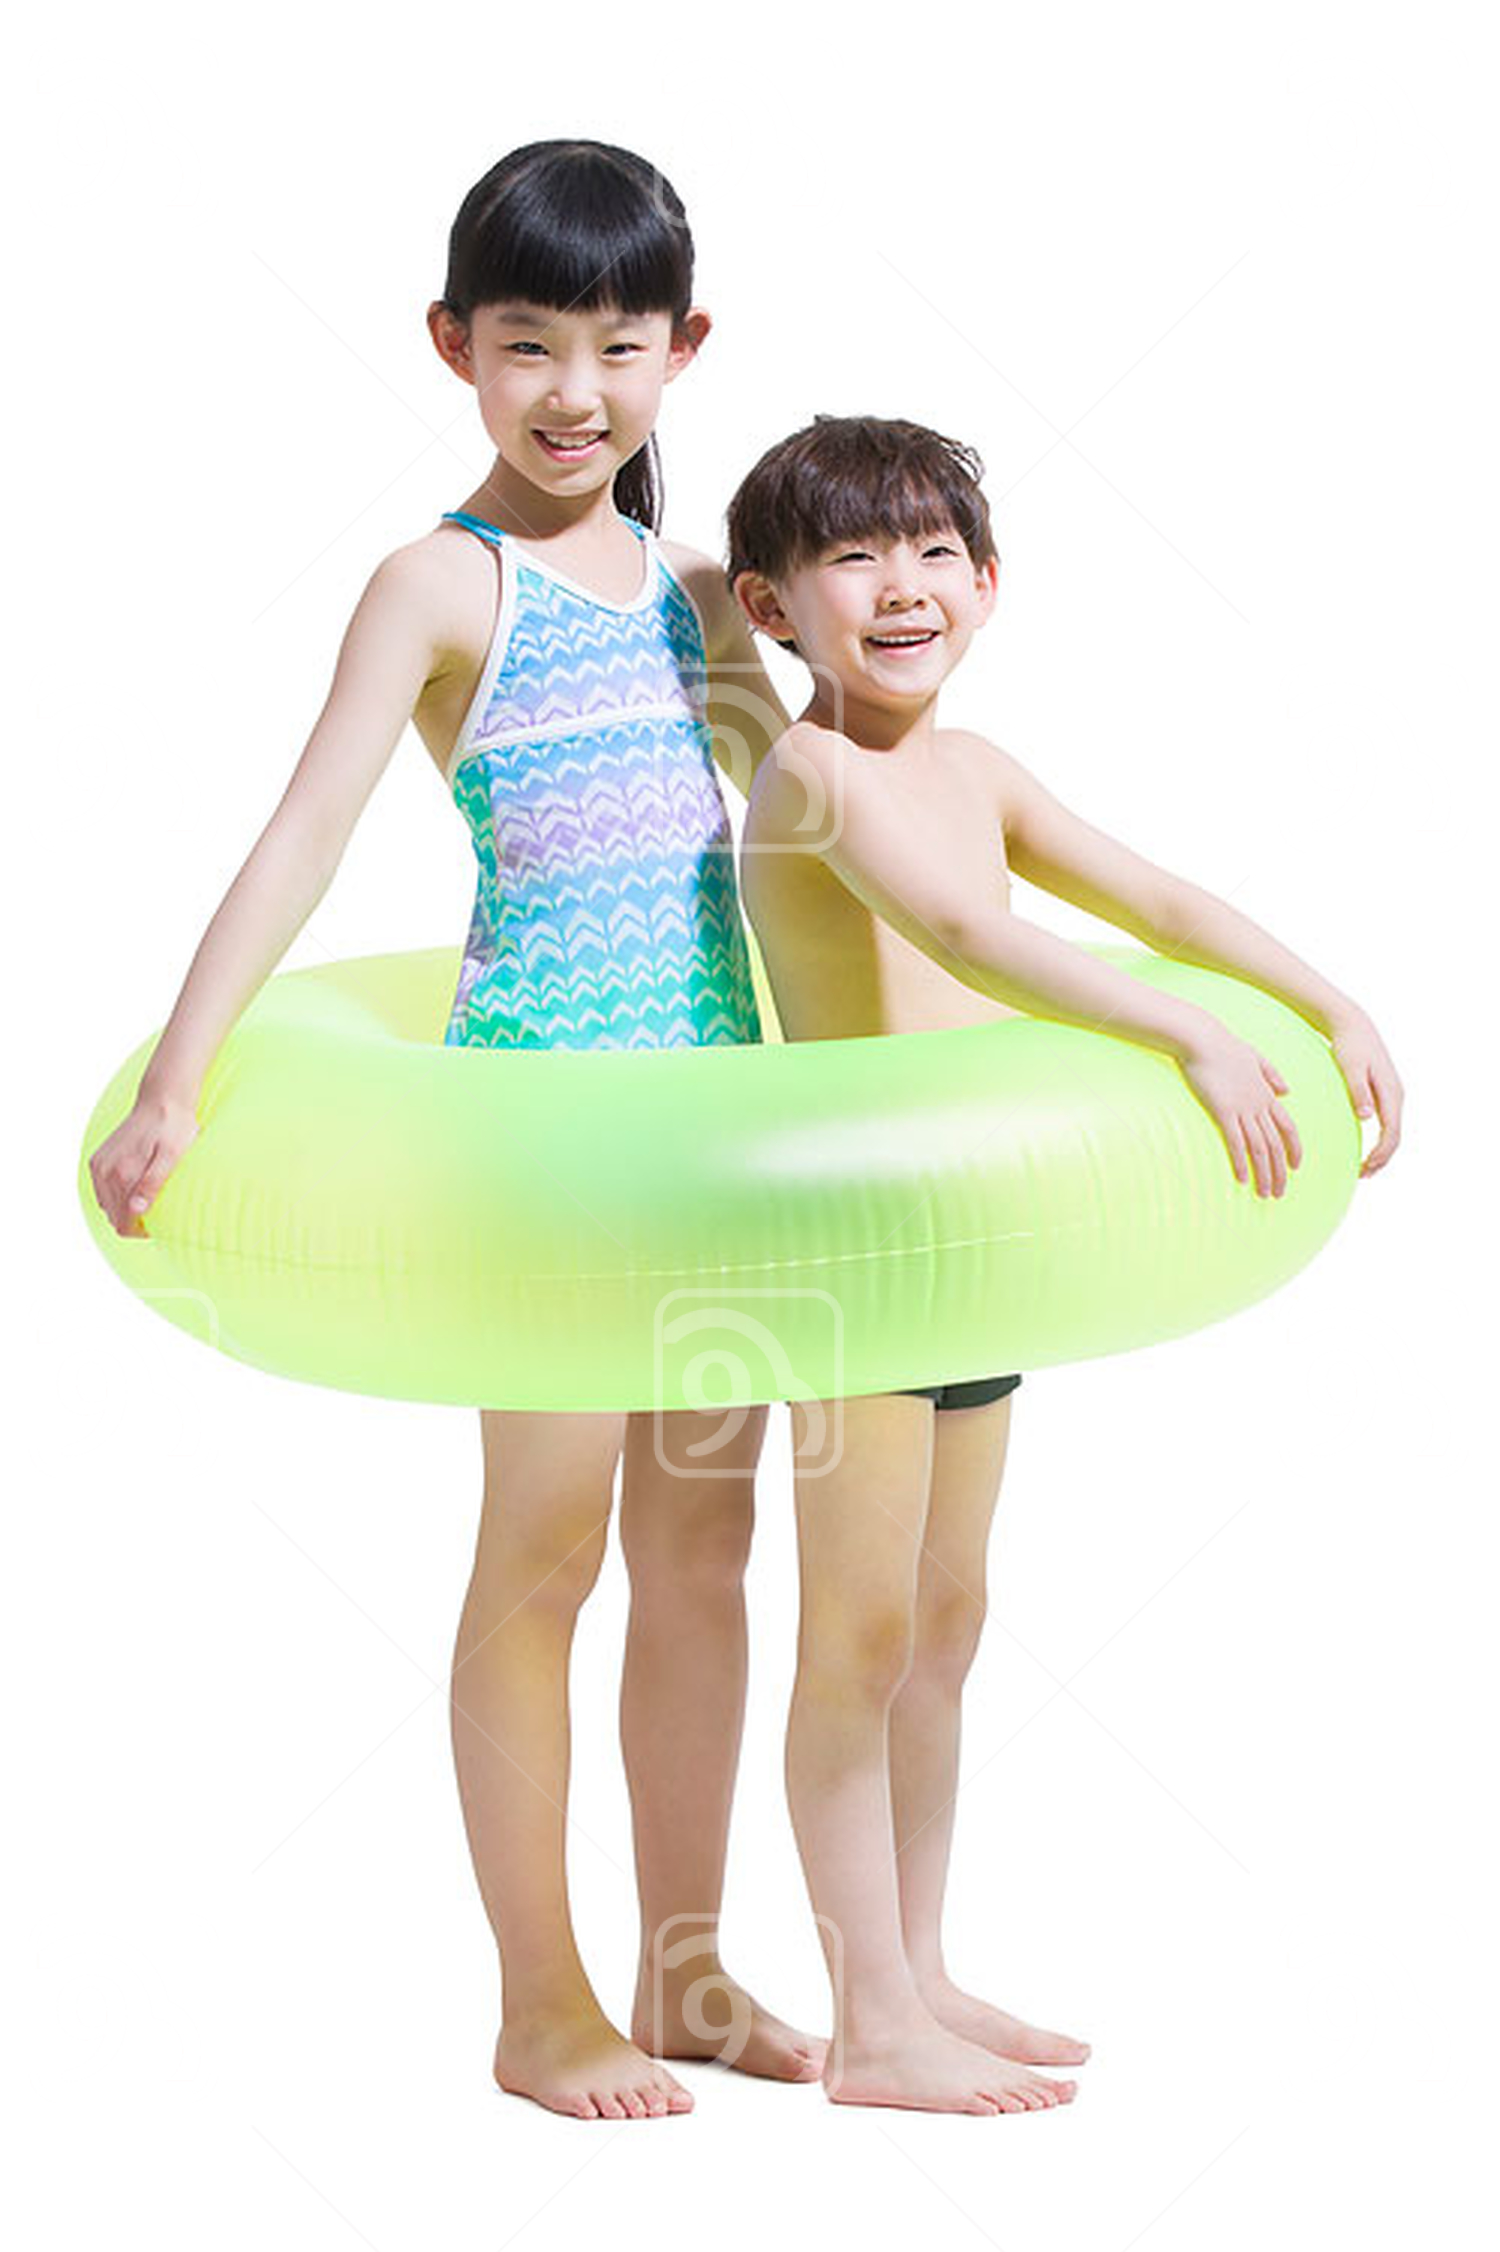 Cute Chinese children in swimsuit with swim ring